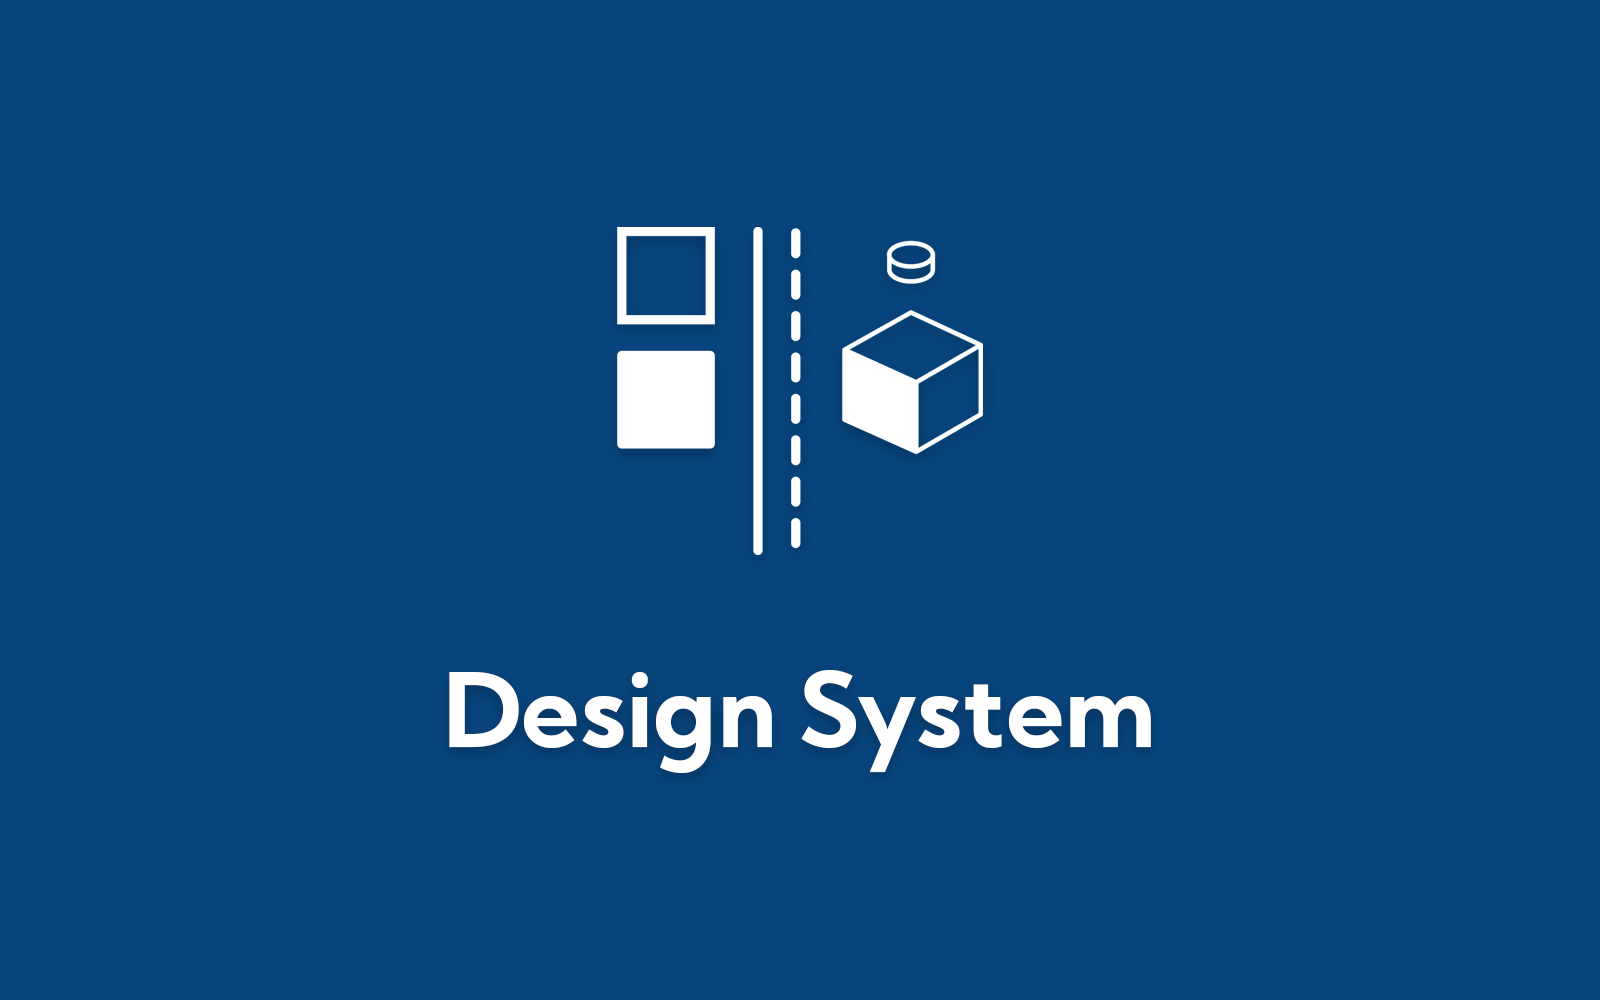 Design System icon on blue background